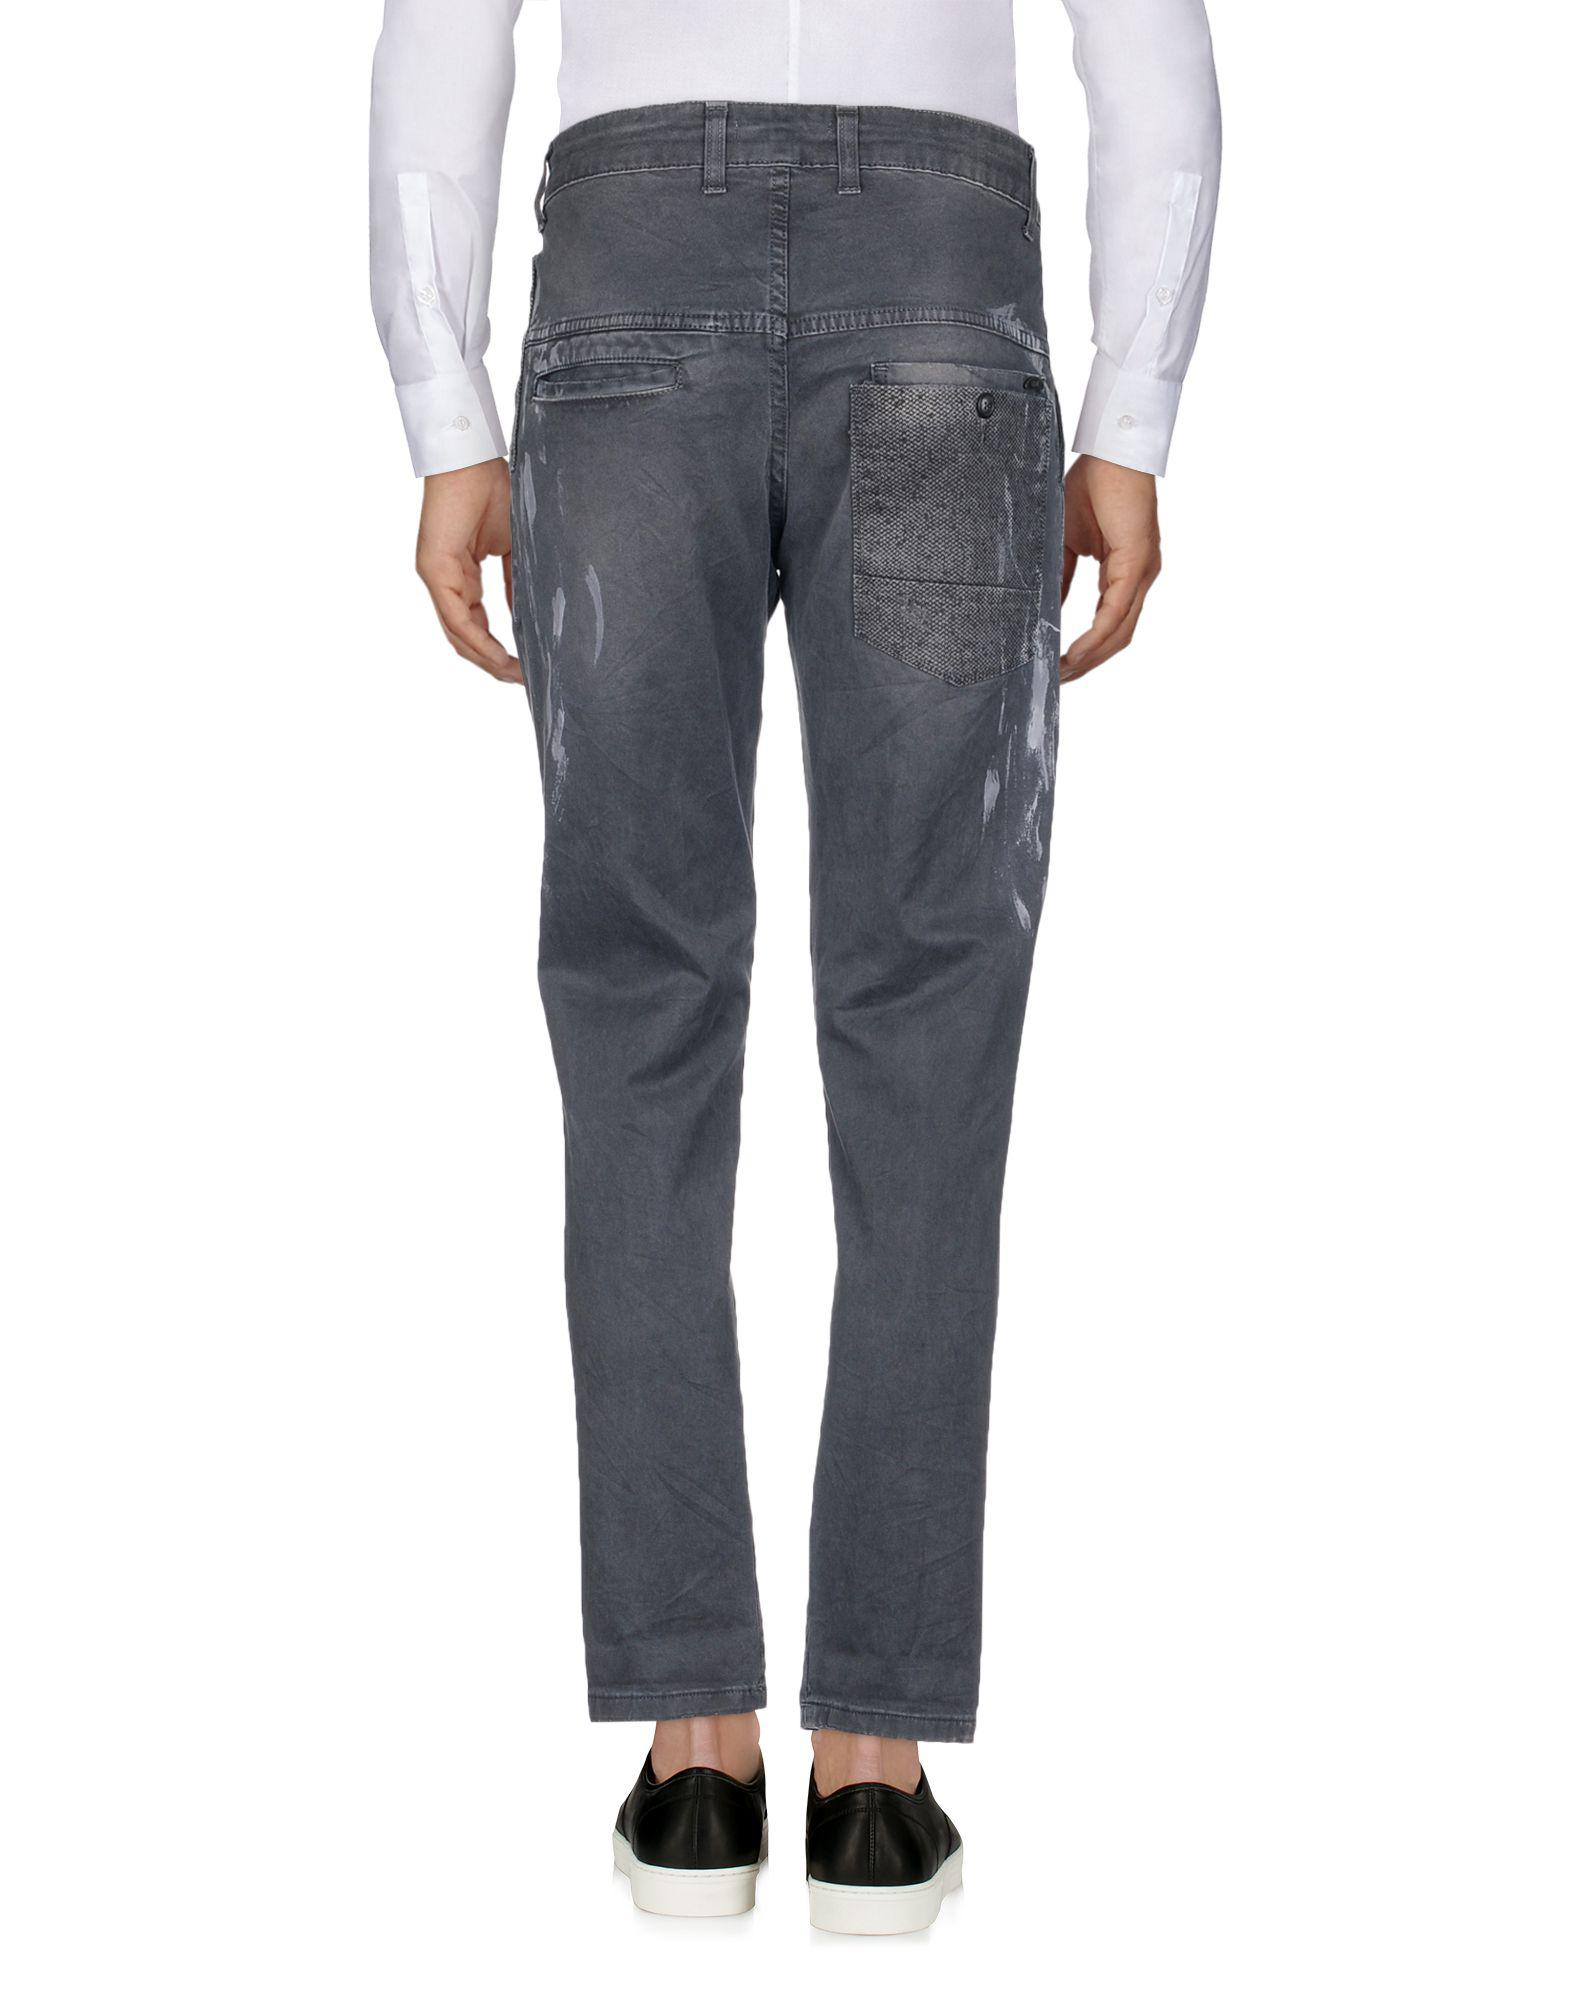 Squad² Cotton Casual Pants in Grey (Grey) for Men